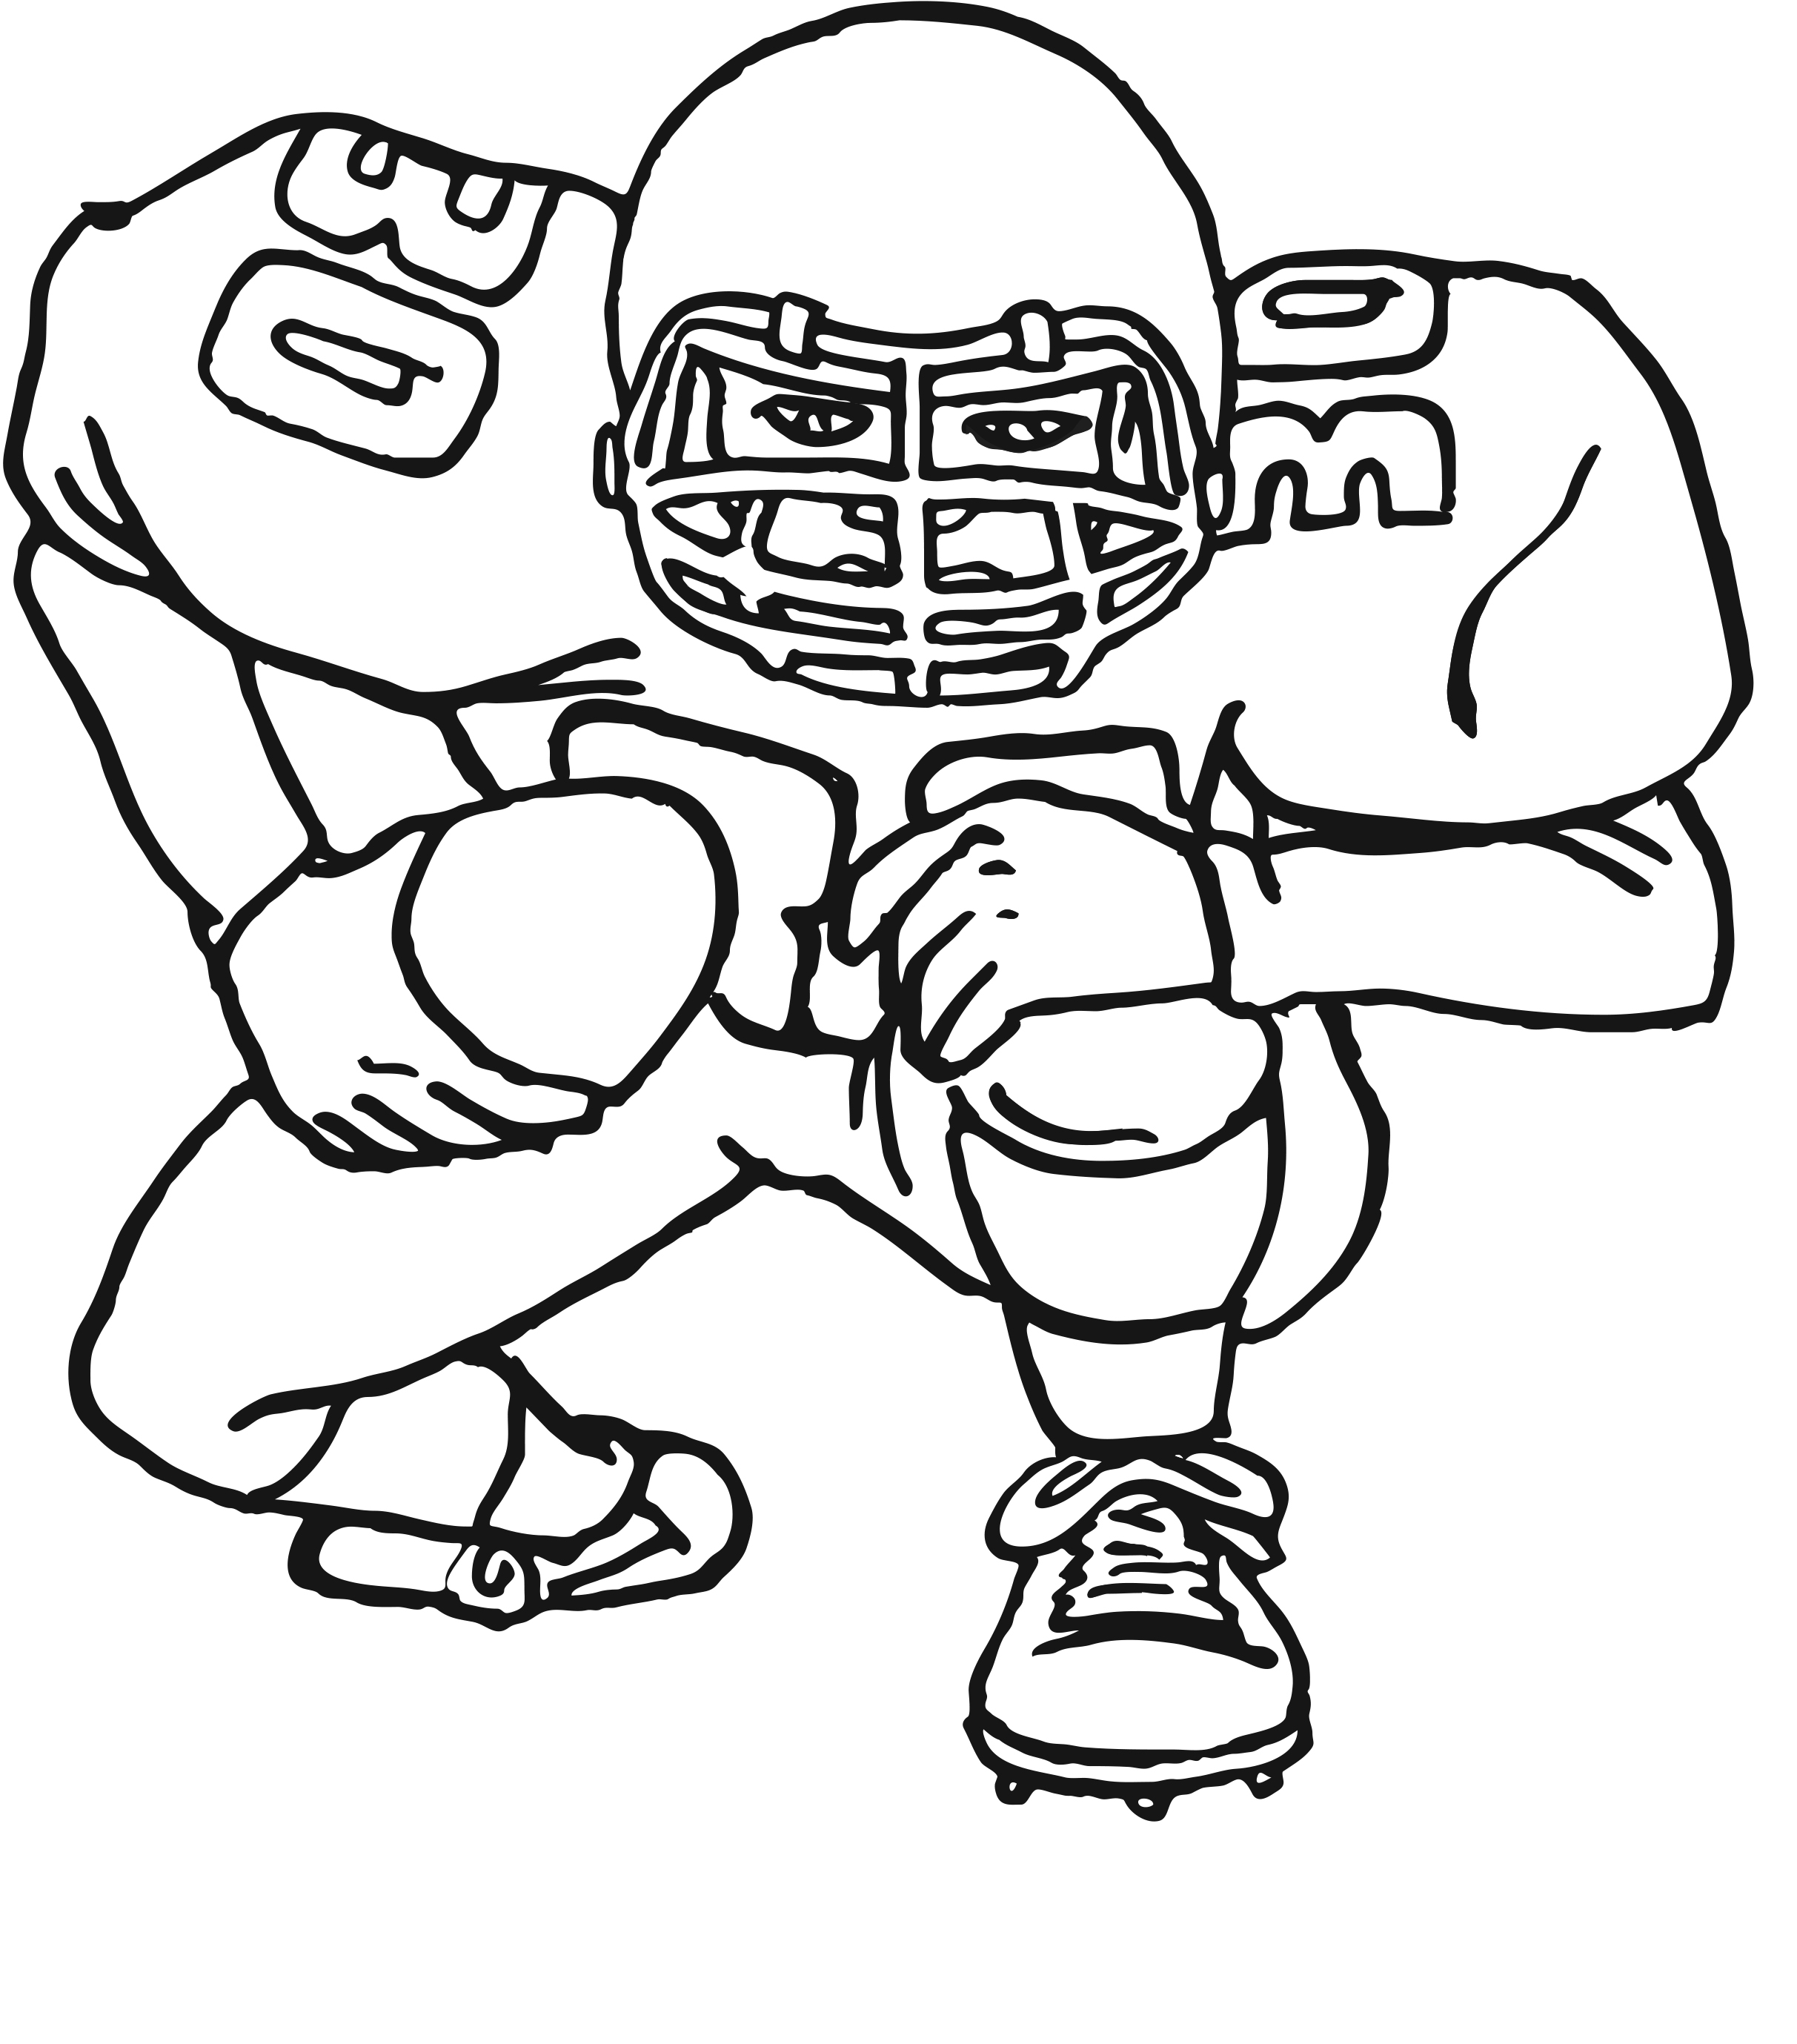 2425x2758 Free Printable Football Coloring Pages For Kids